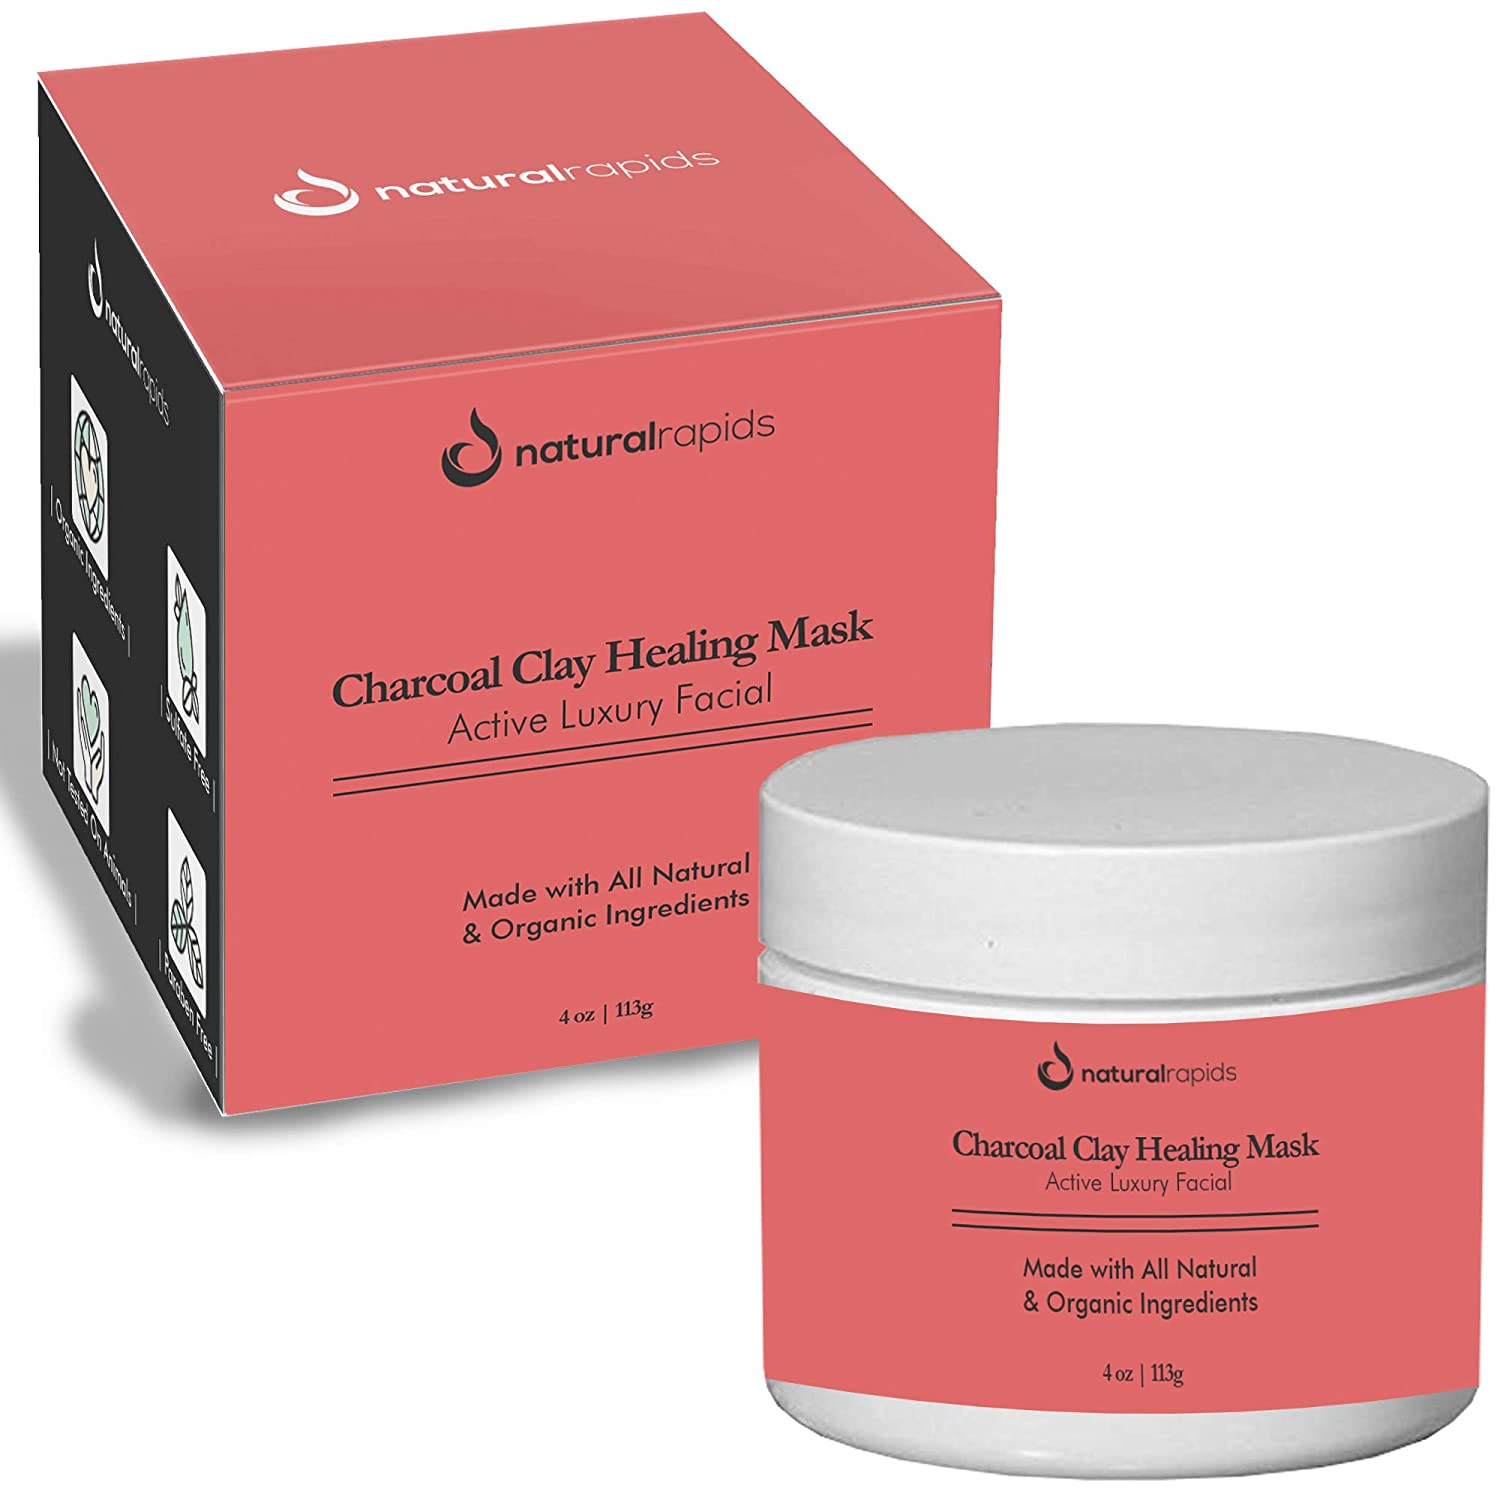 Healing Clay Charcoal Face Mask - Best For Blackheads And Acne Treatment - Calcium Bentonite Clay Black Mask - Facial Cleanser, Blackhead Remover, And Pore Minimizer Natural Rapids